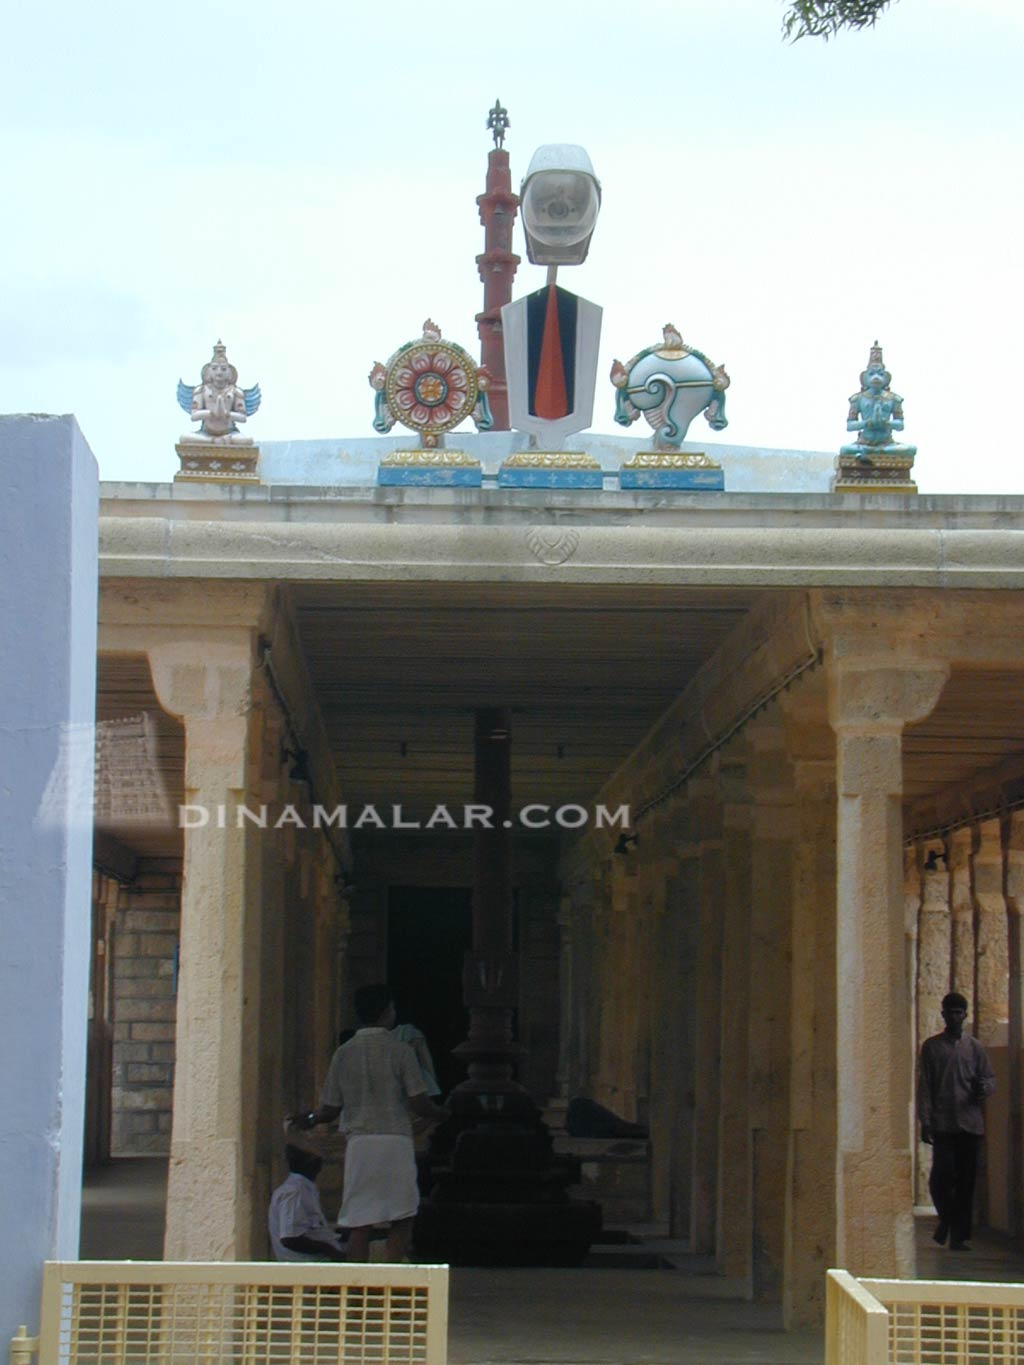 Share-Wonders: ANOTHER 10 TEMPLE PHOTOS 17th DECEMBER 2011